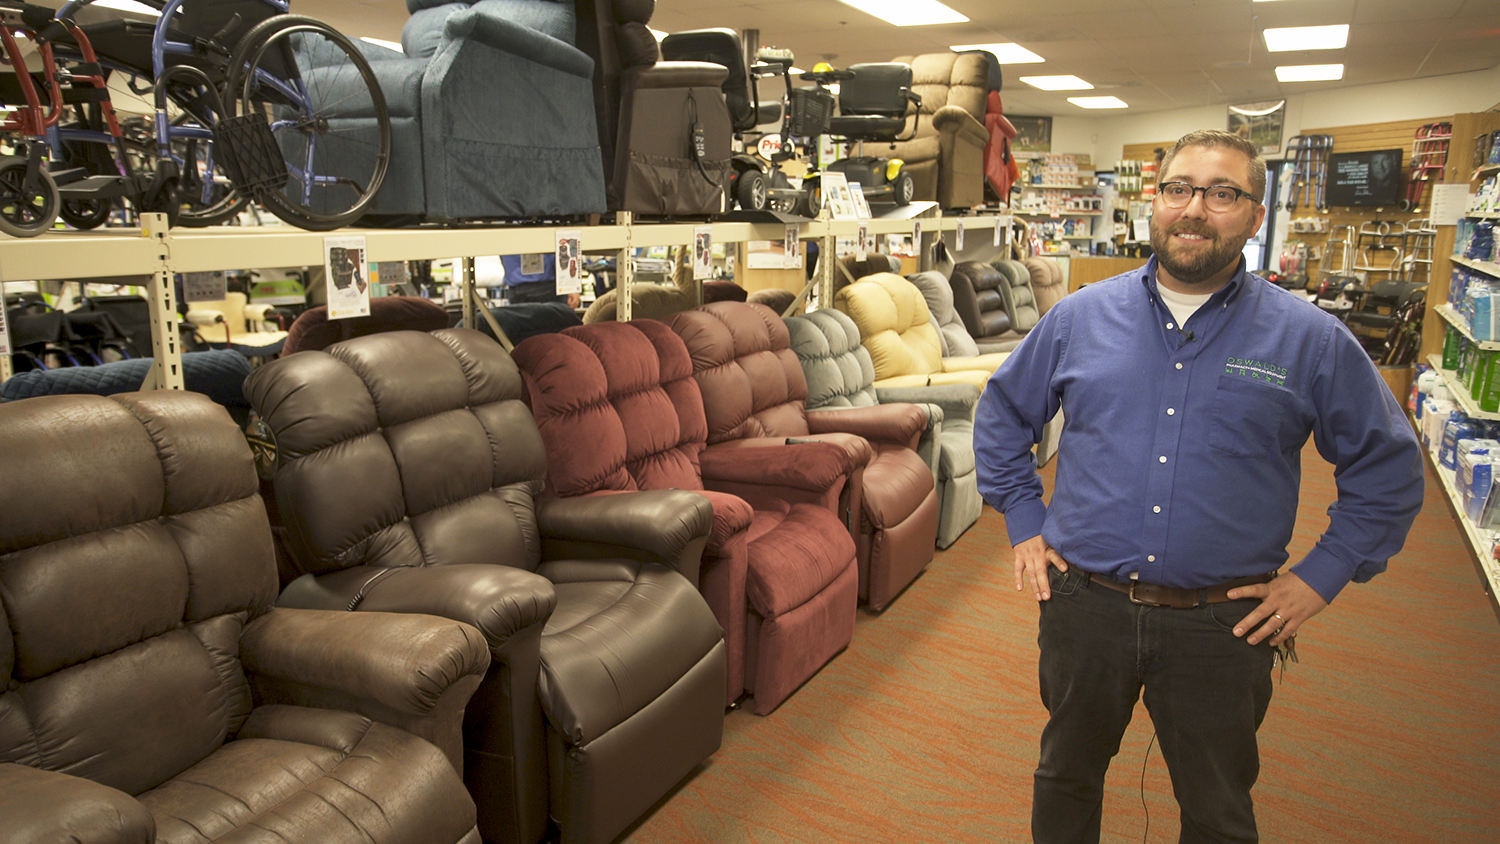 Alex Anderson with Golden lift recliners at Oswalds Pharmacy